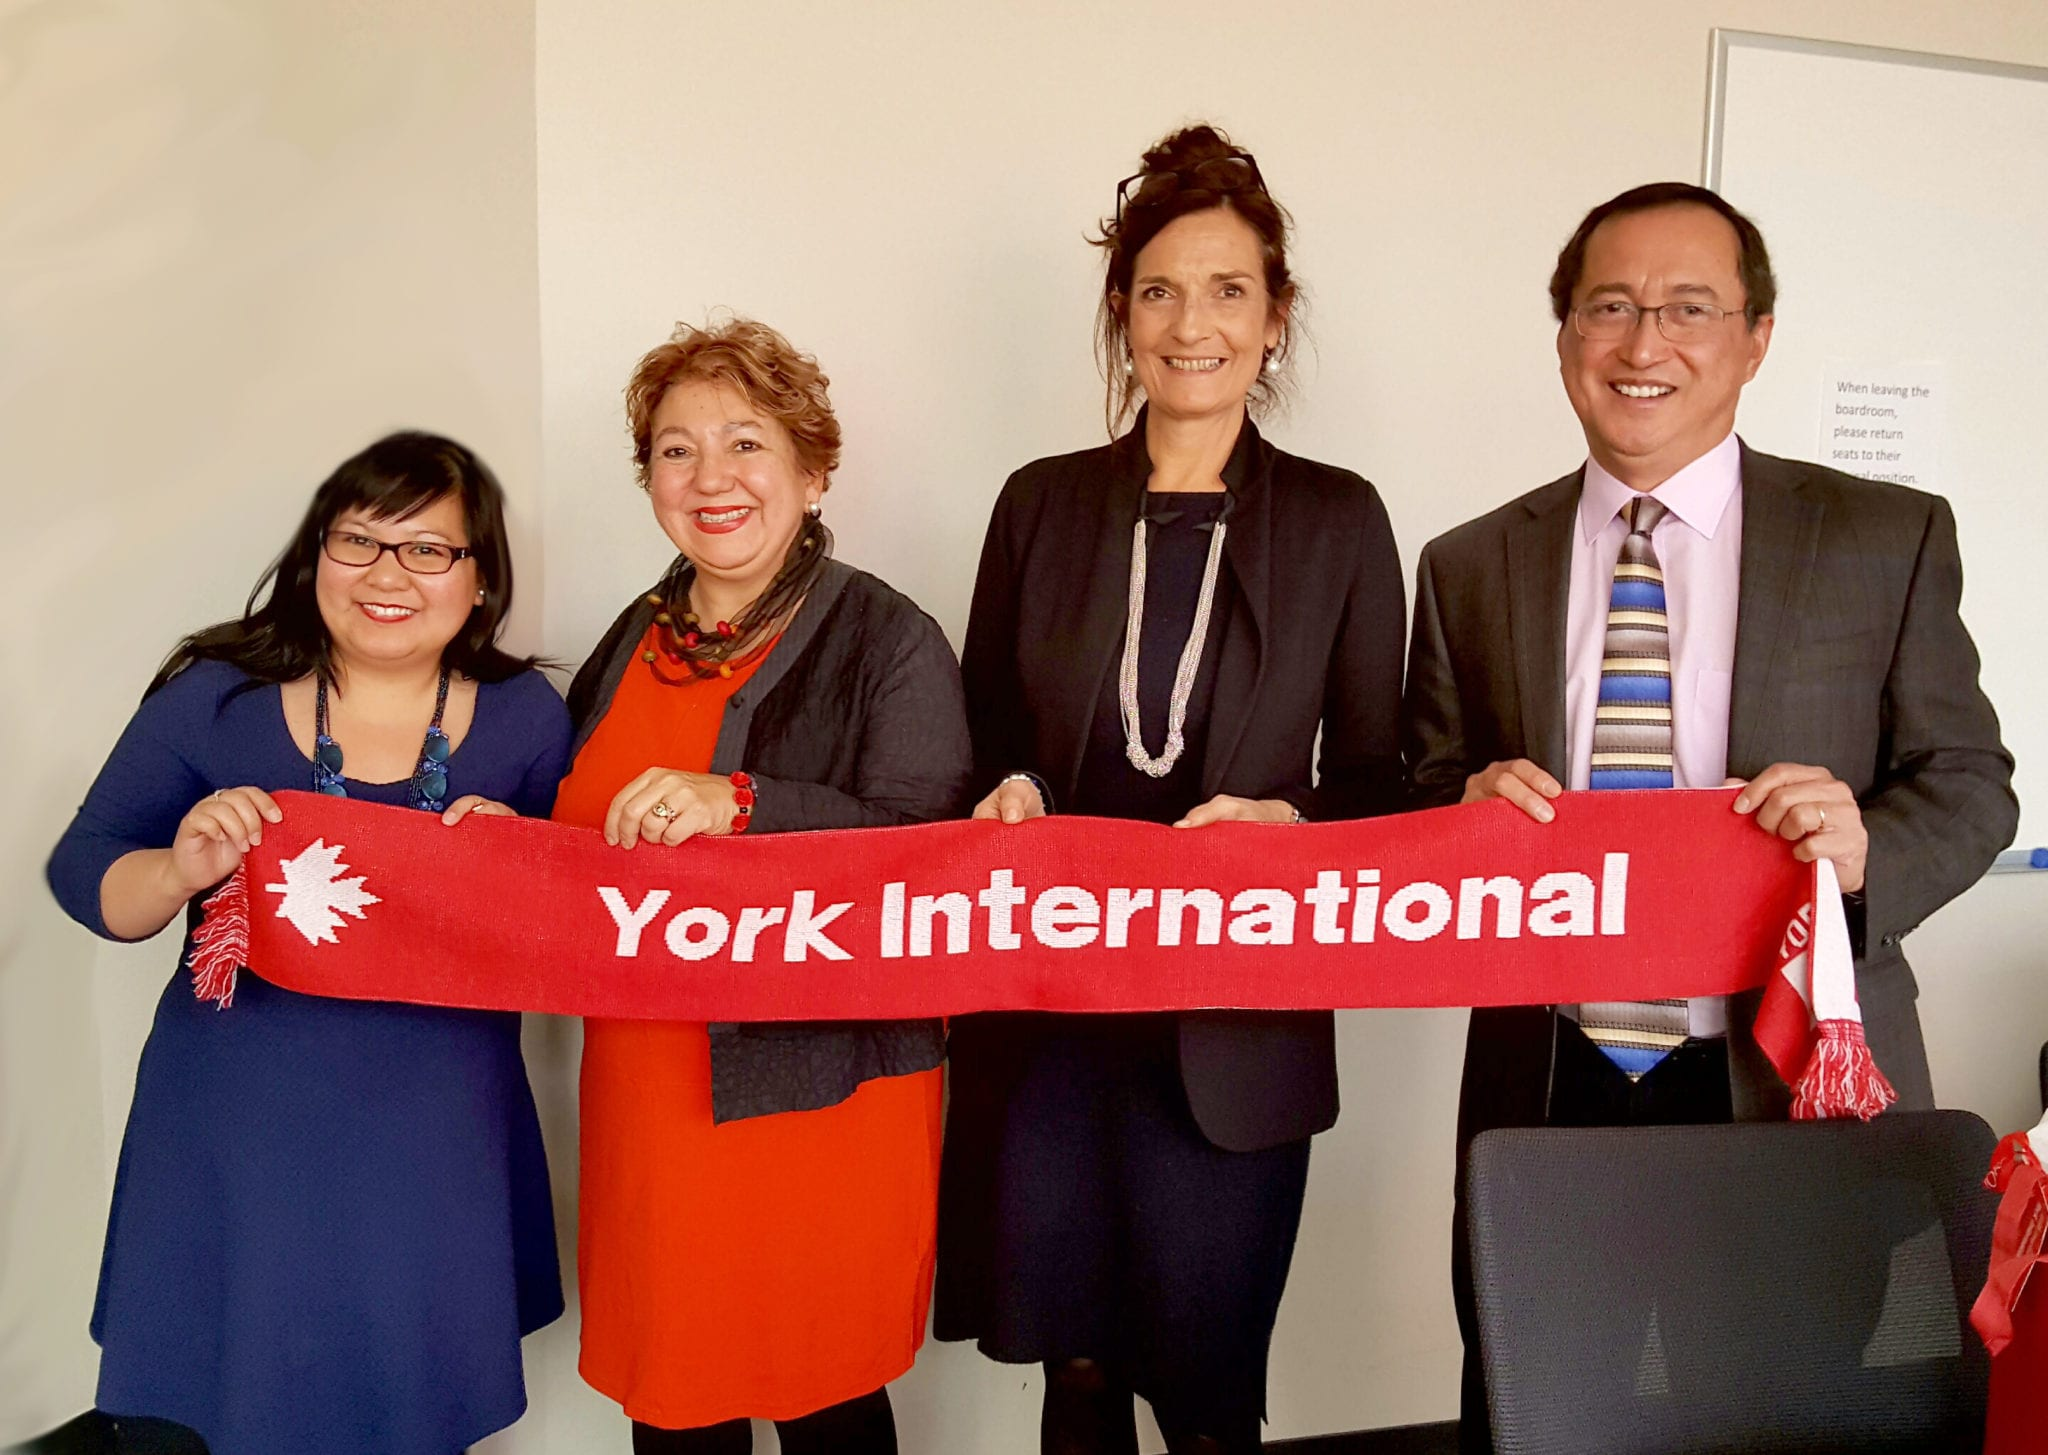 York International, School of Administrative Studies and ZHAW School Of Management and Law, Switzerland, Nov 2016